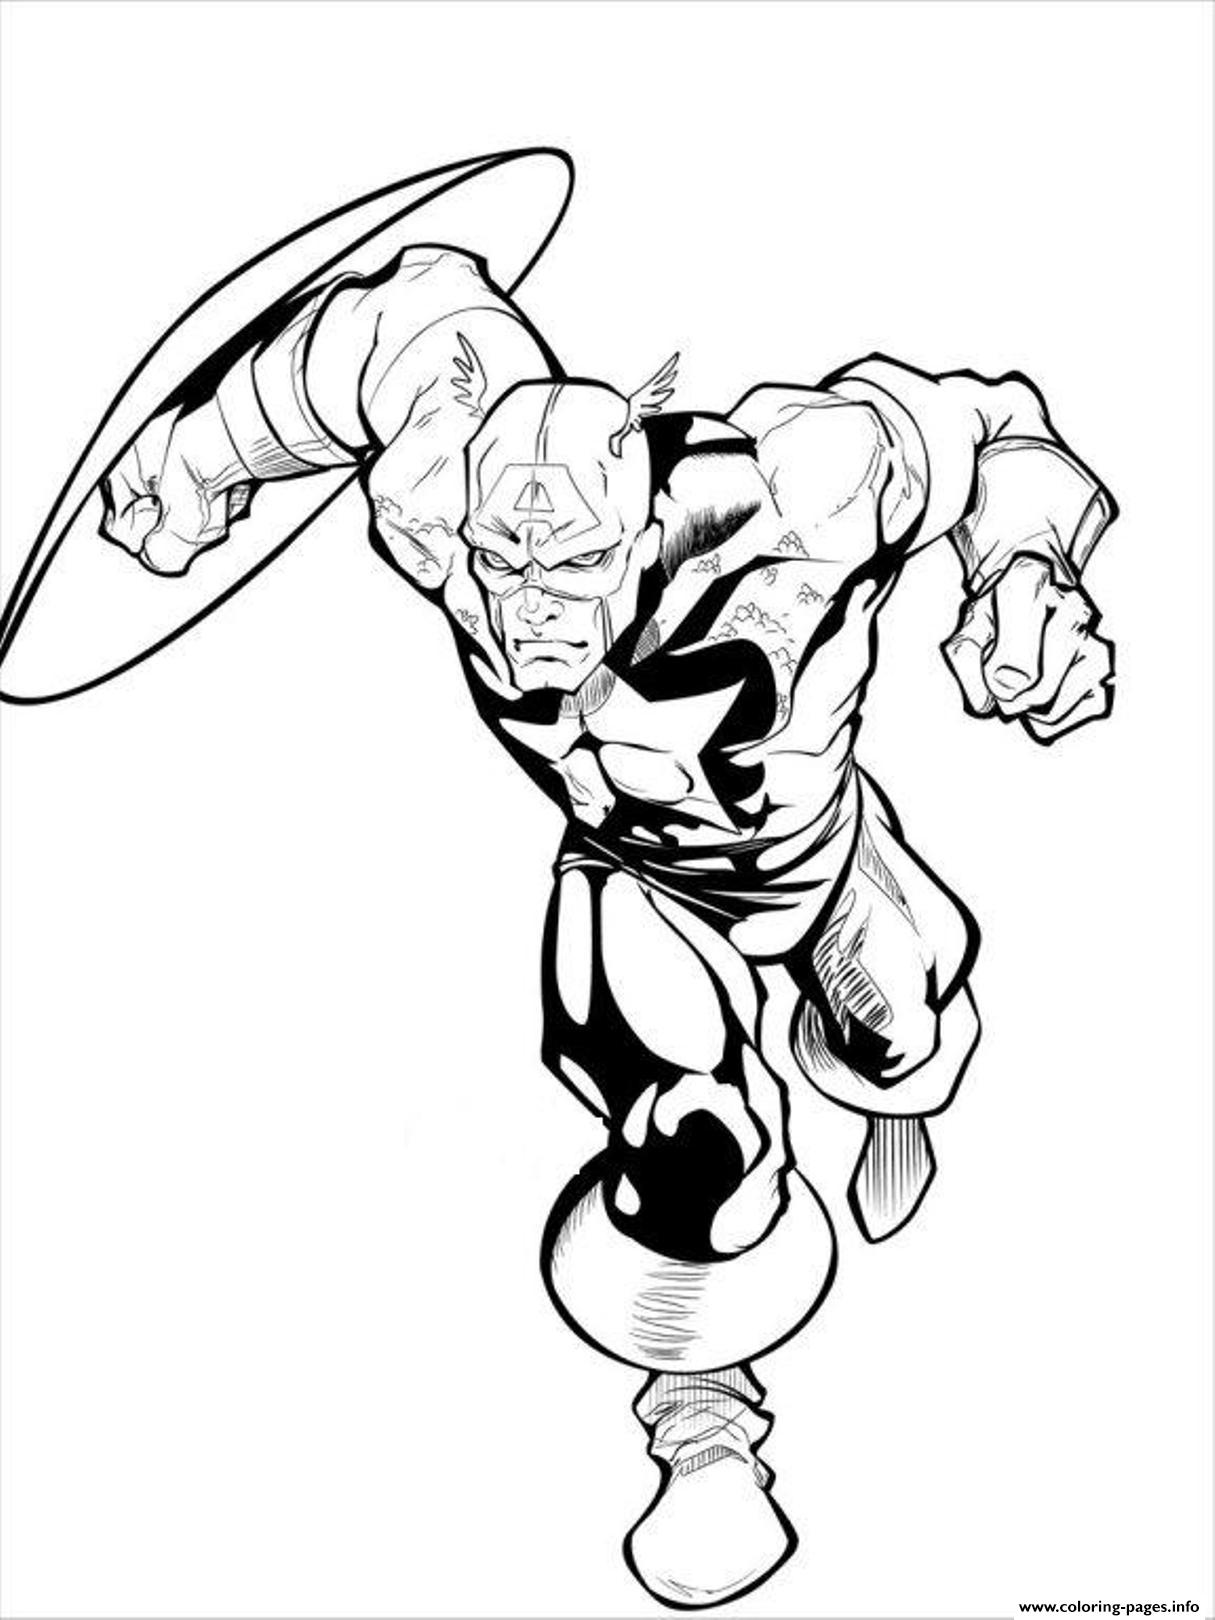 superhero coloring pages captain america - photo#22